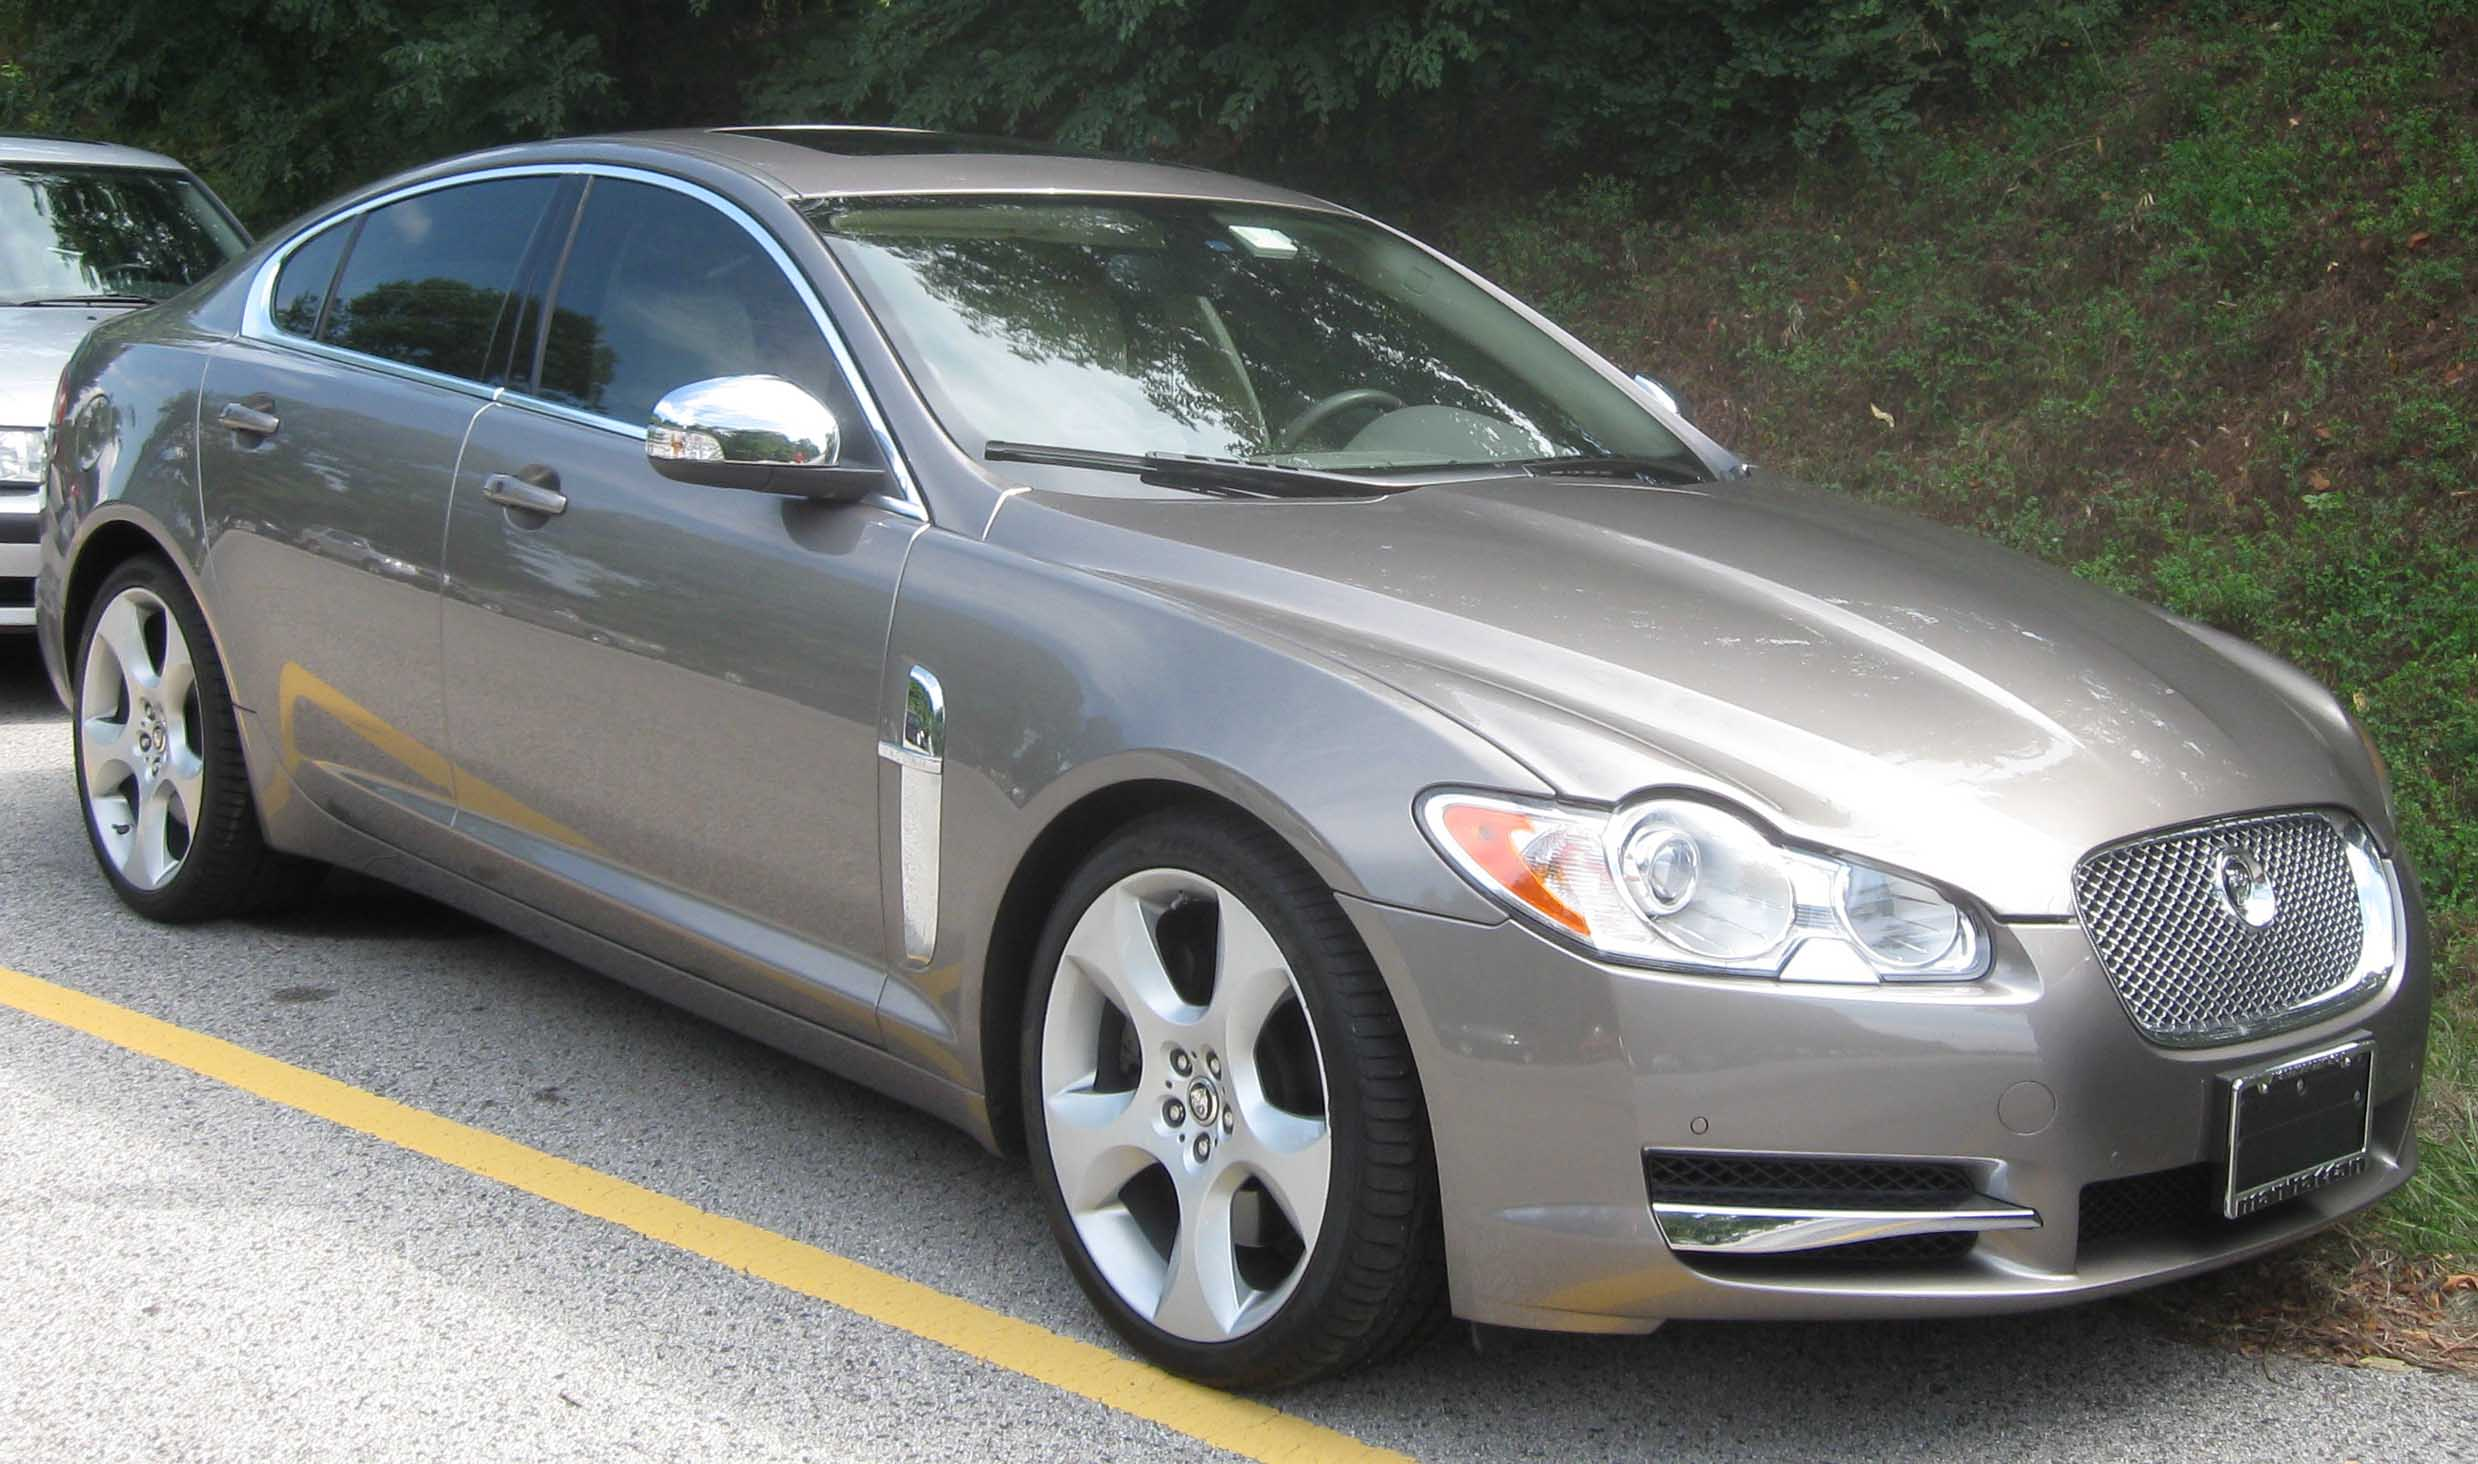 File:2009 Jaguar XF 2